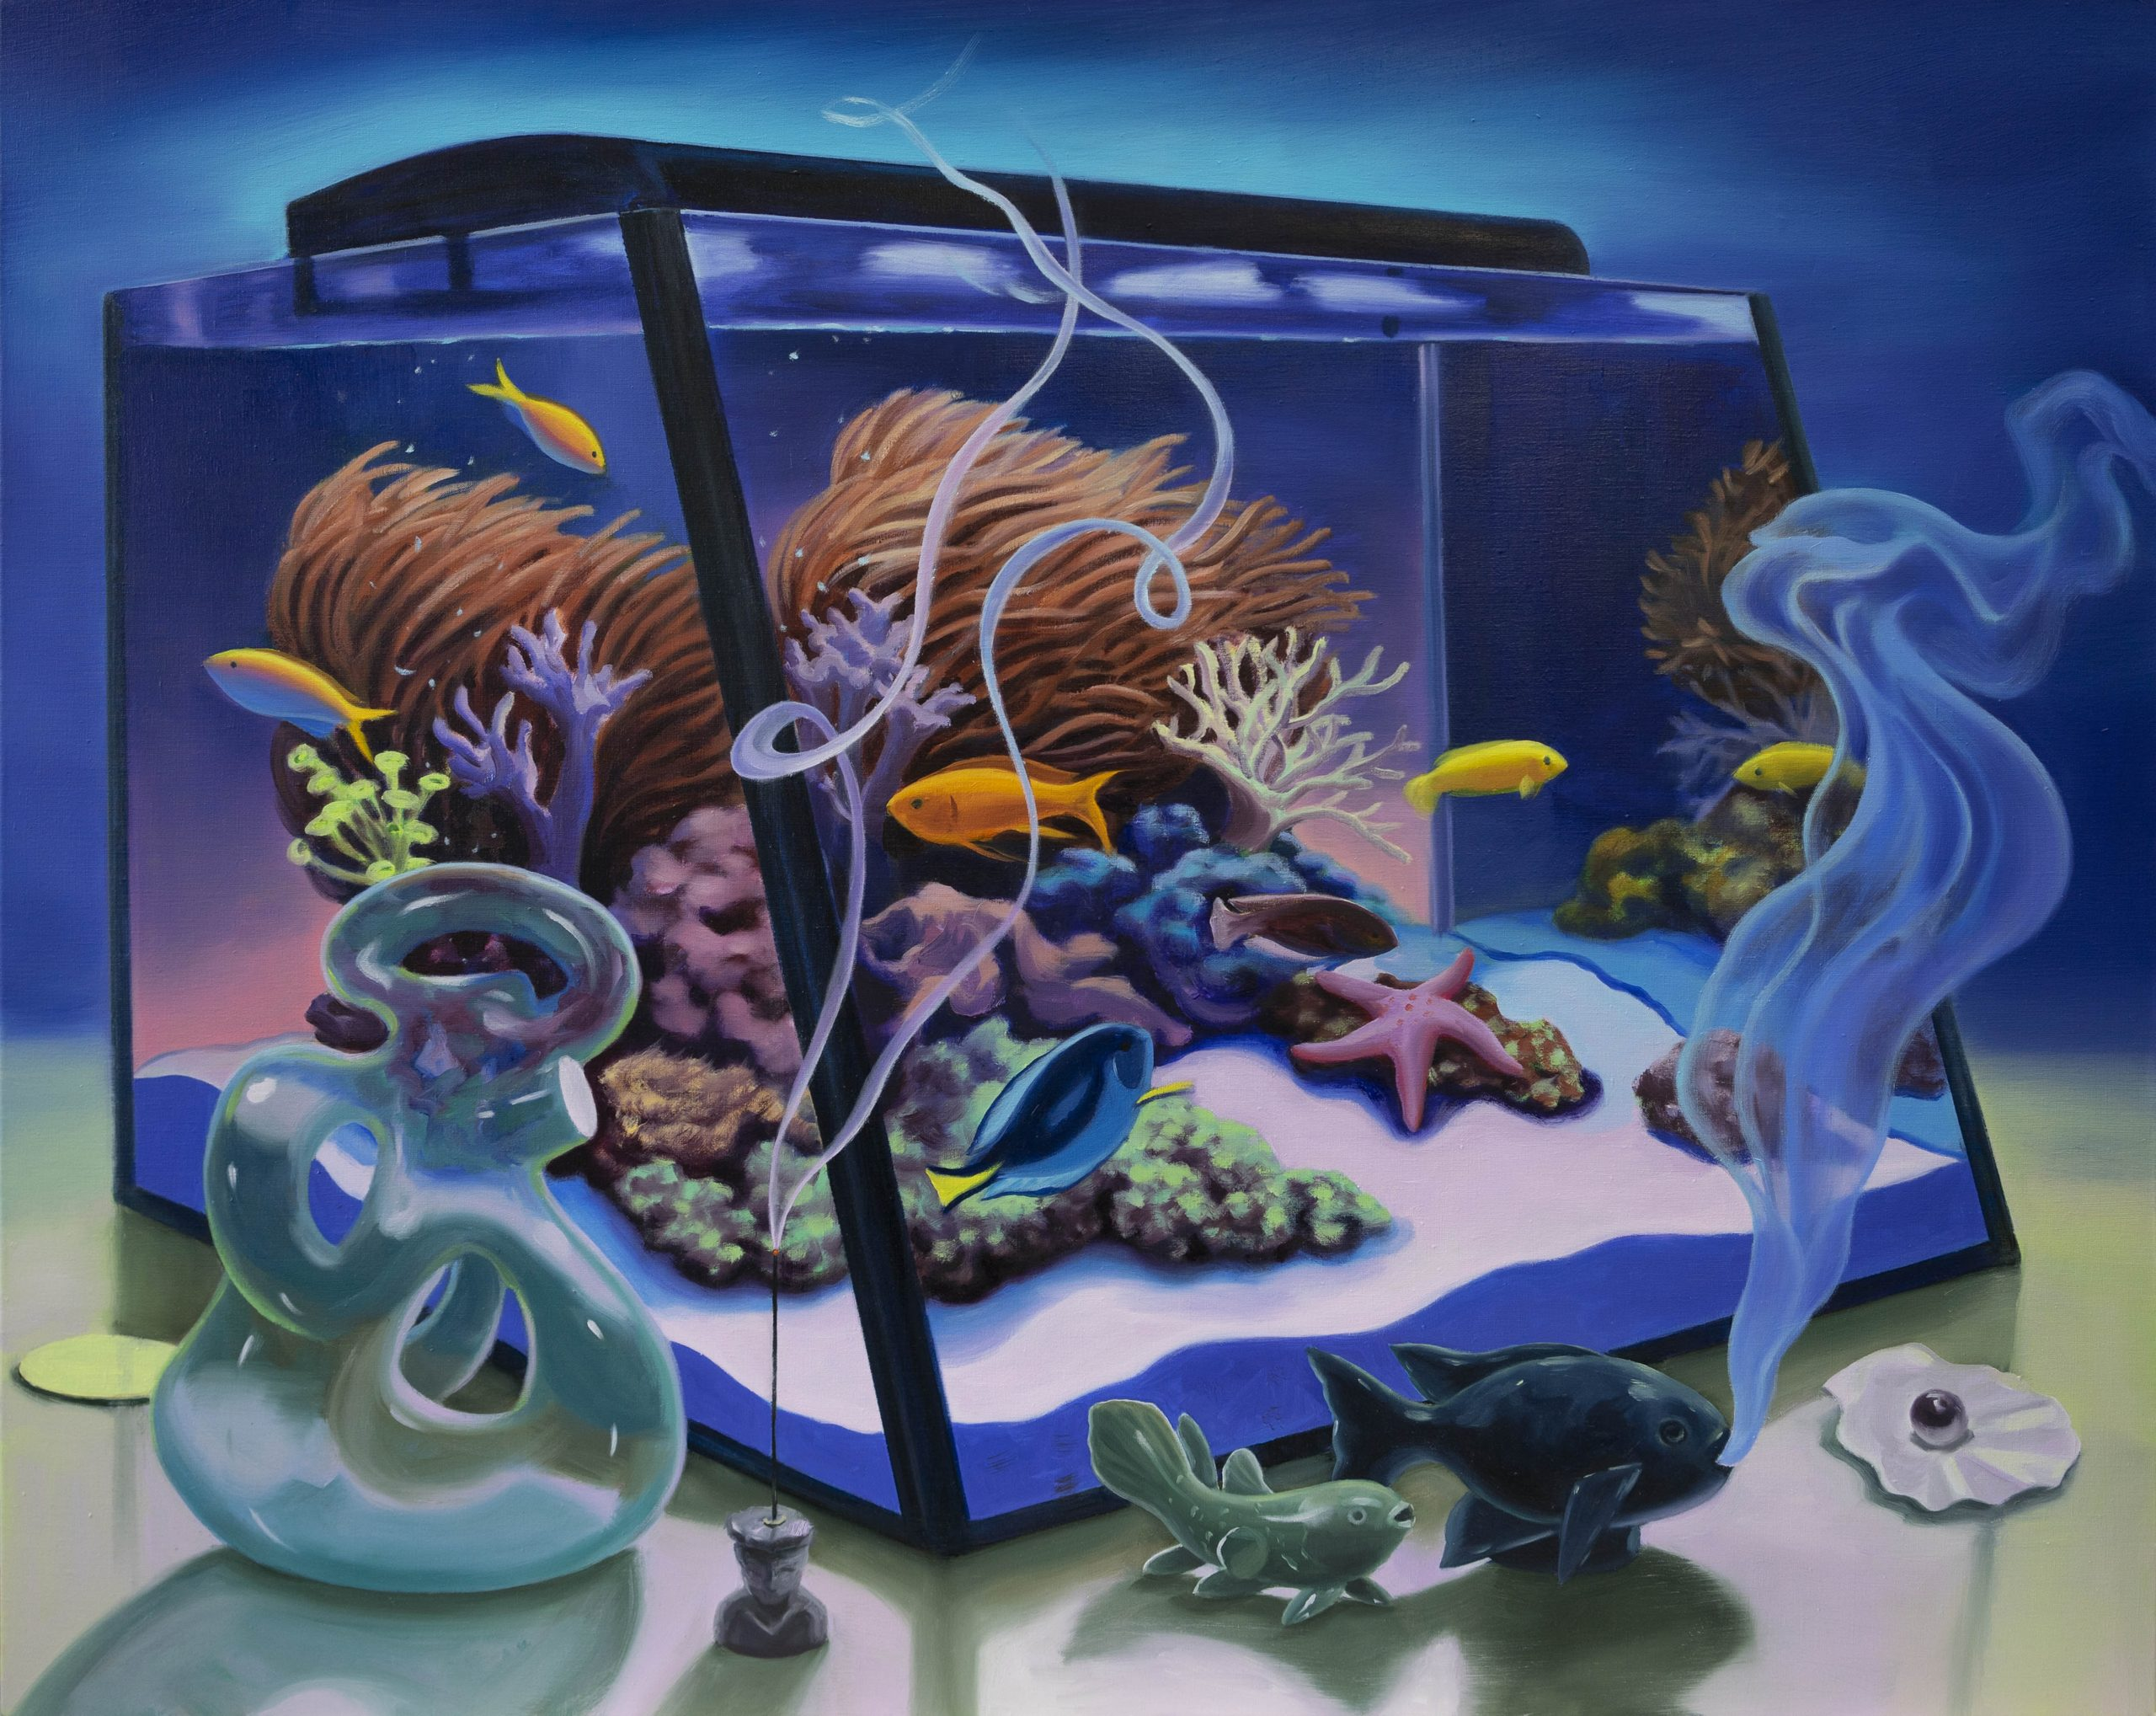 Still Life with Fish Tank (Smoke and Sand), 2020-2021